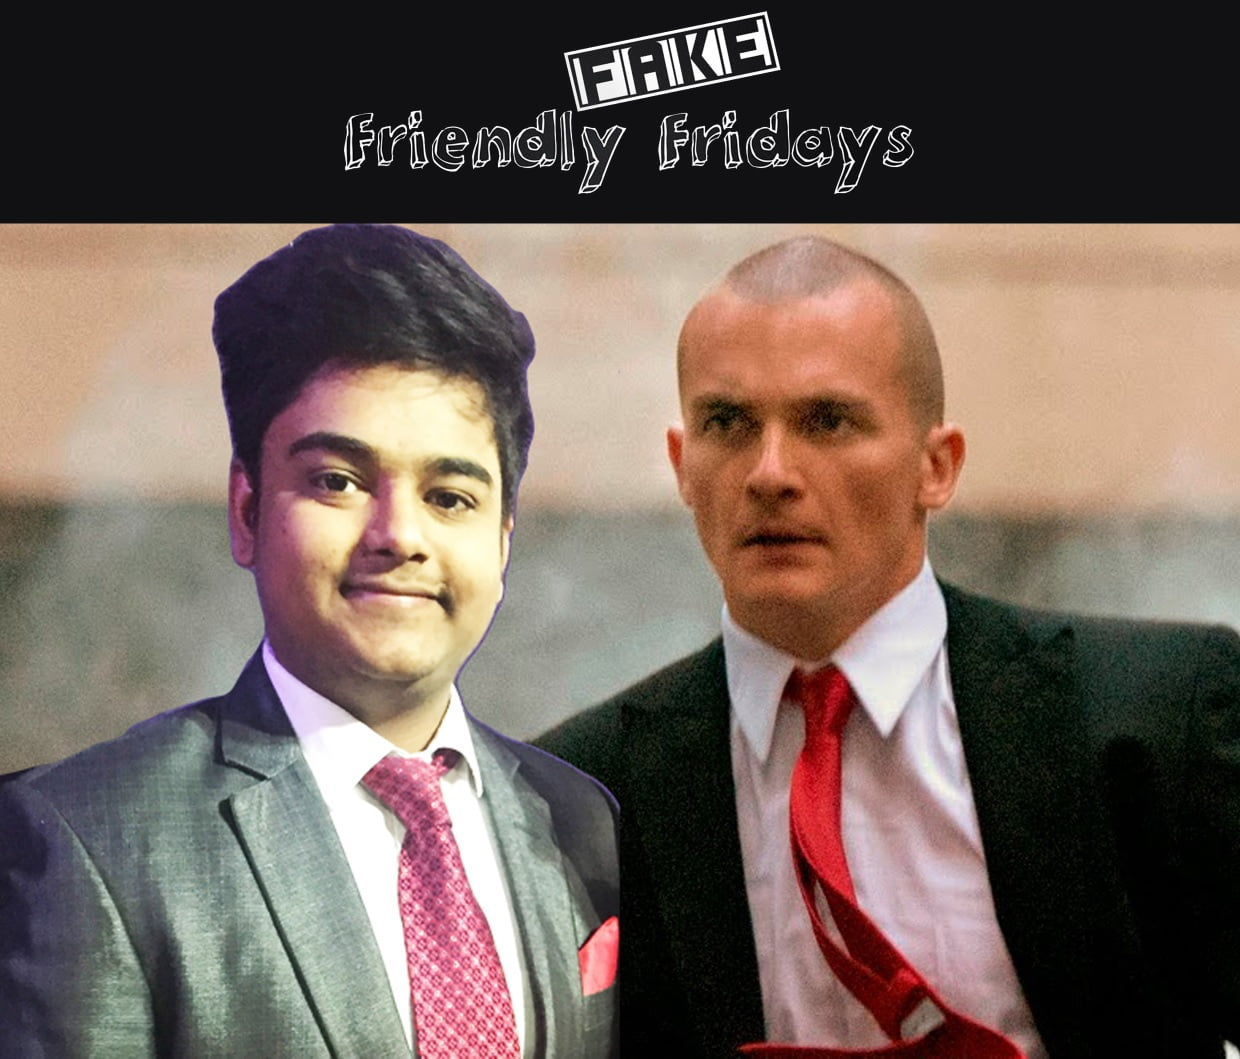 Agent Fake fake friendly fridays with hitman - agent 47 - ed times